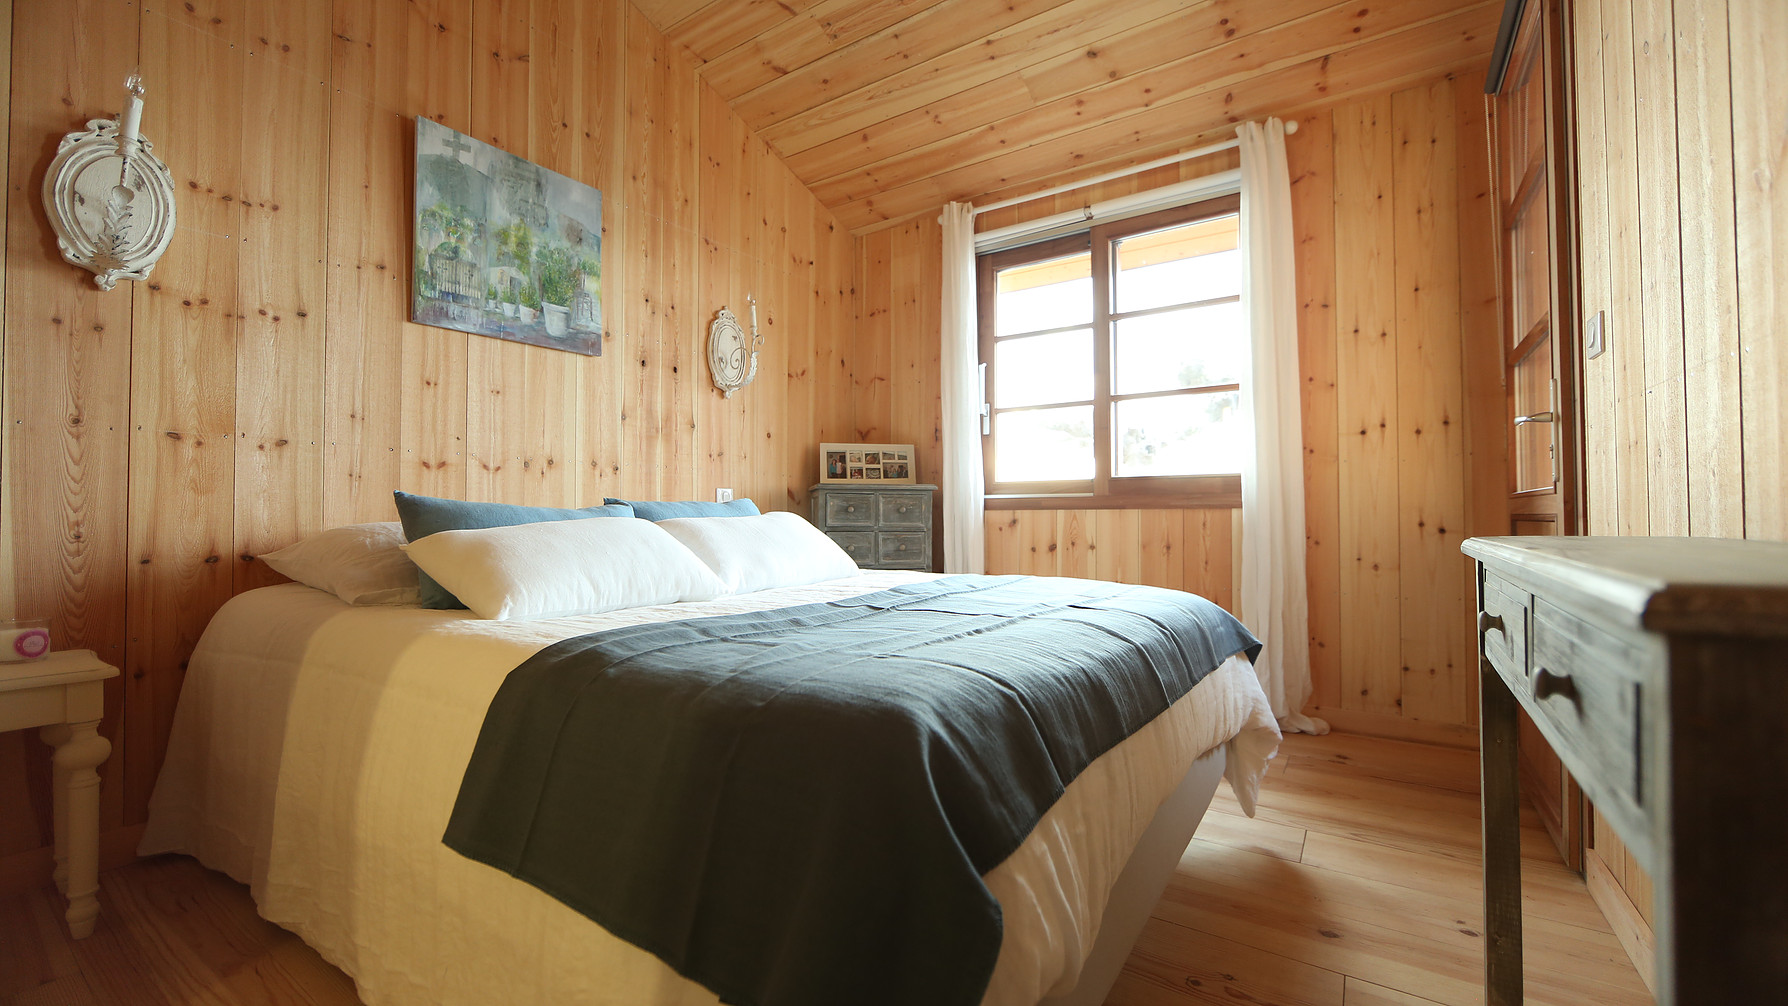 la cabane japajo chambres d 39 h tes au bord de l 39 eau au cap ferret. Black Bedroom Furniture Sets. Home Design Ideas